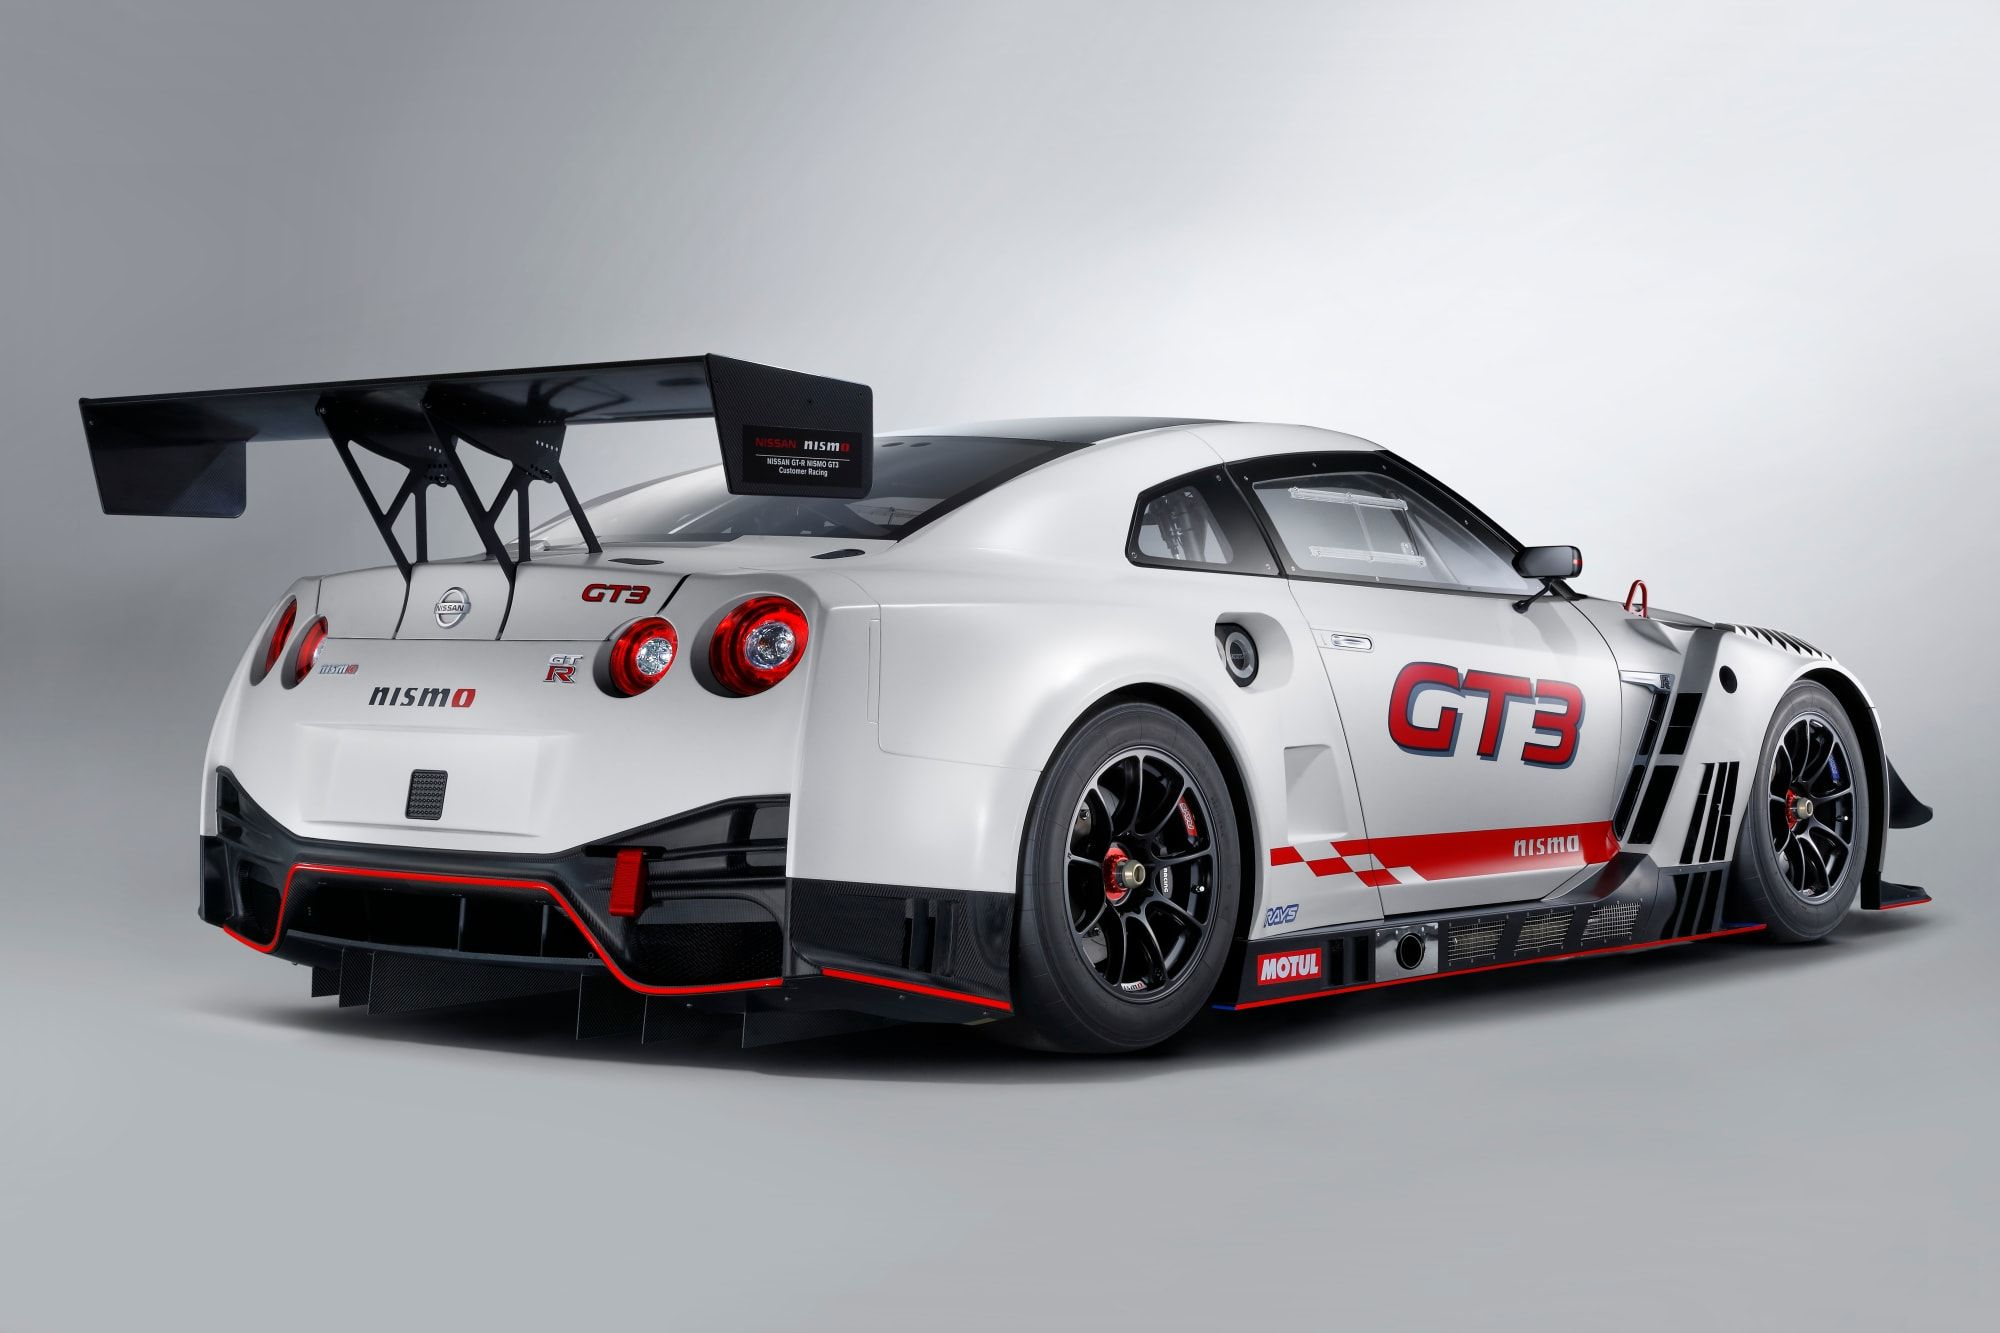 nissan announces its 2018 gt r nismo gt3 projects to try rh pinterest com